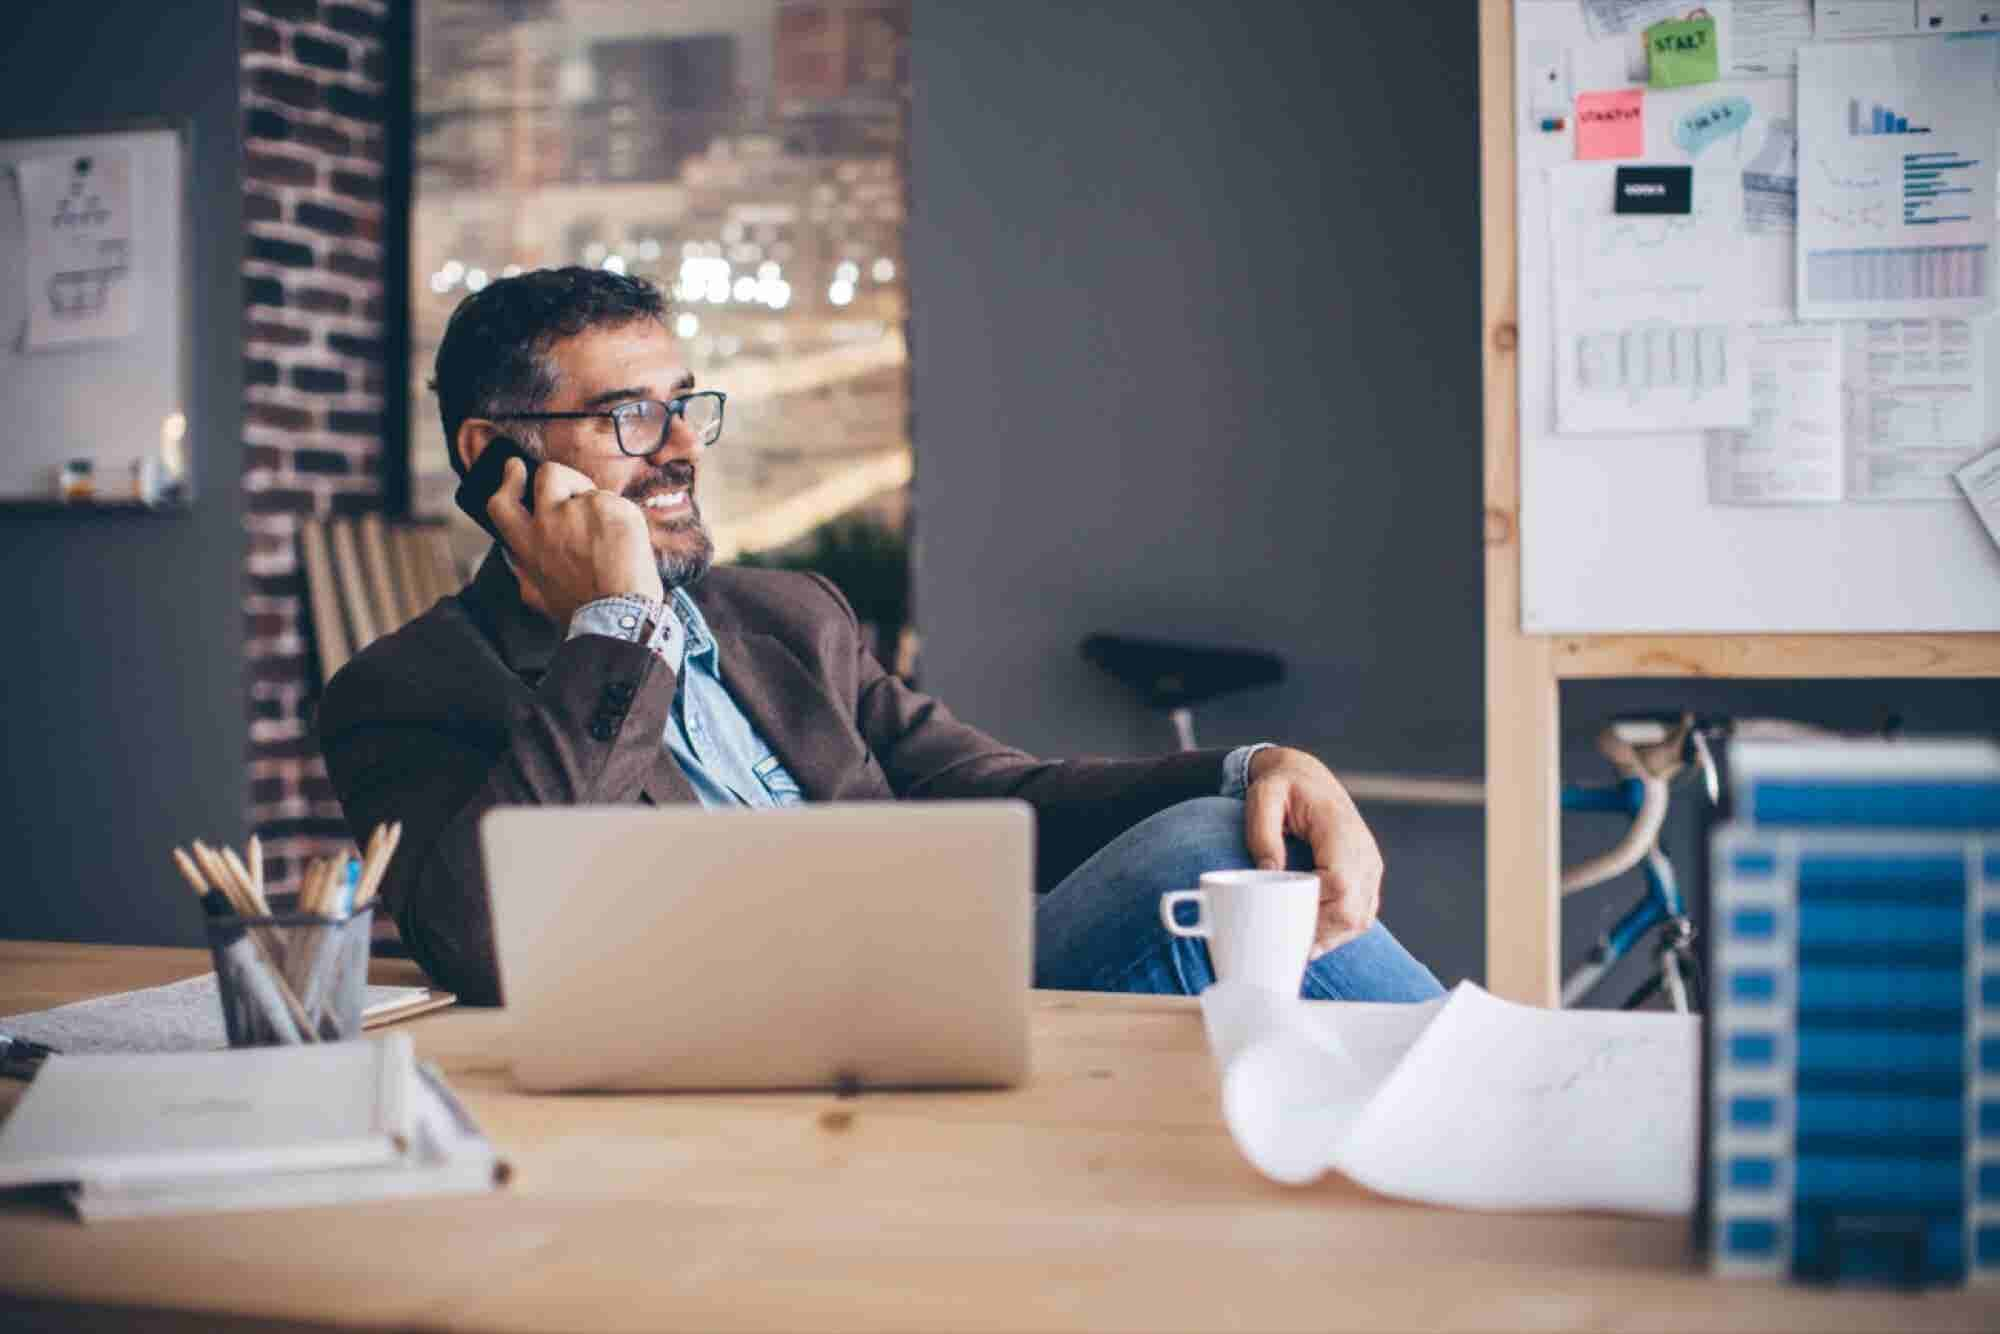 Boasting About Your Company Isn't a Smart Thought-Leadership Tactic